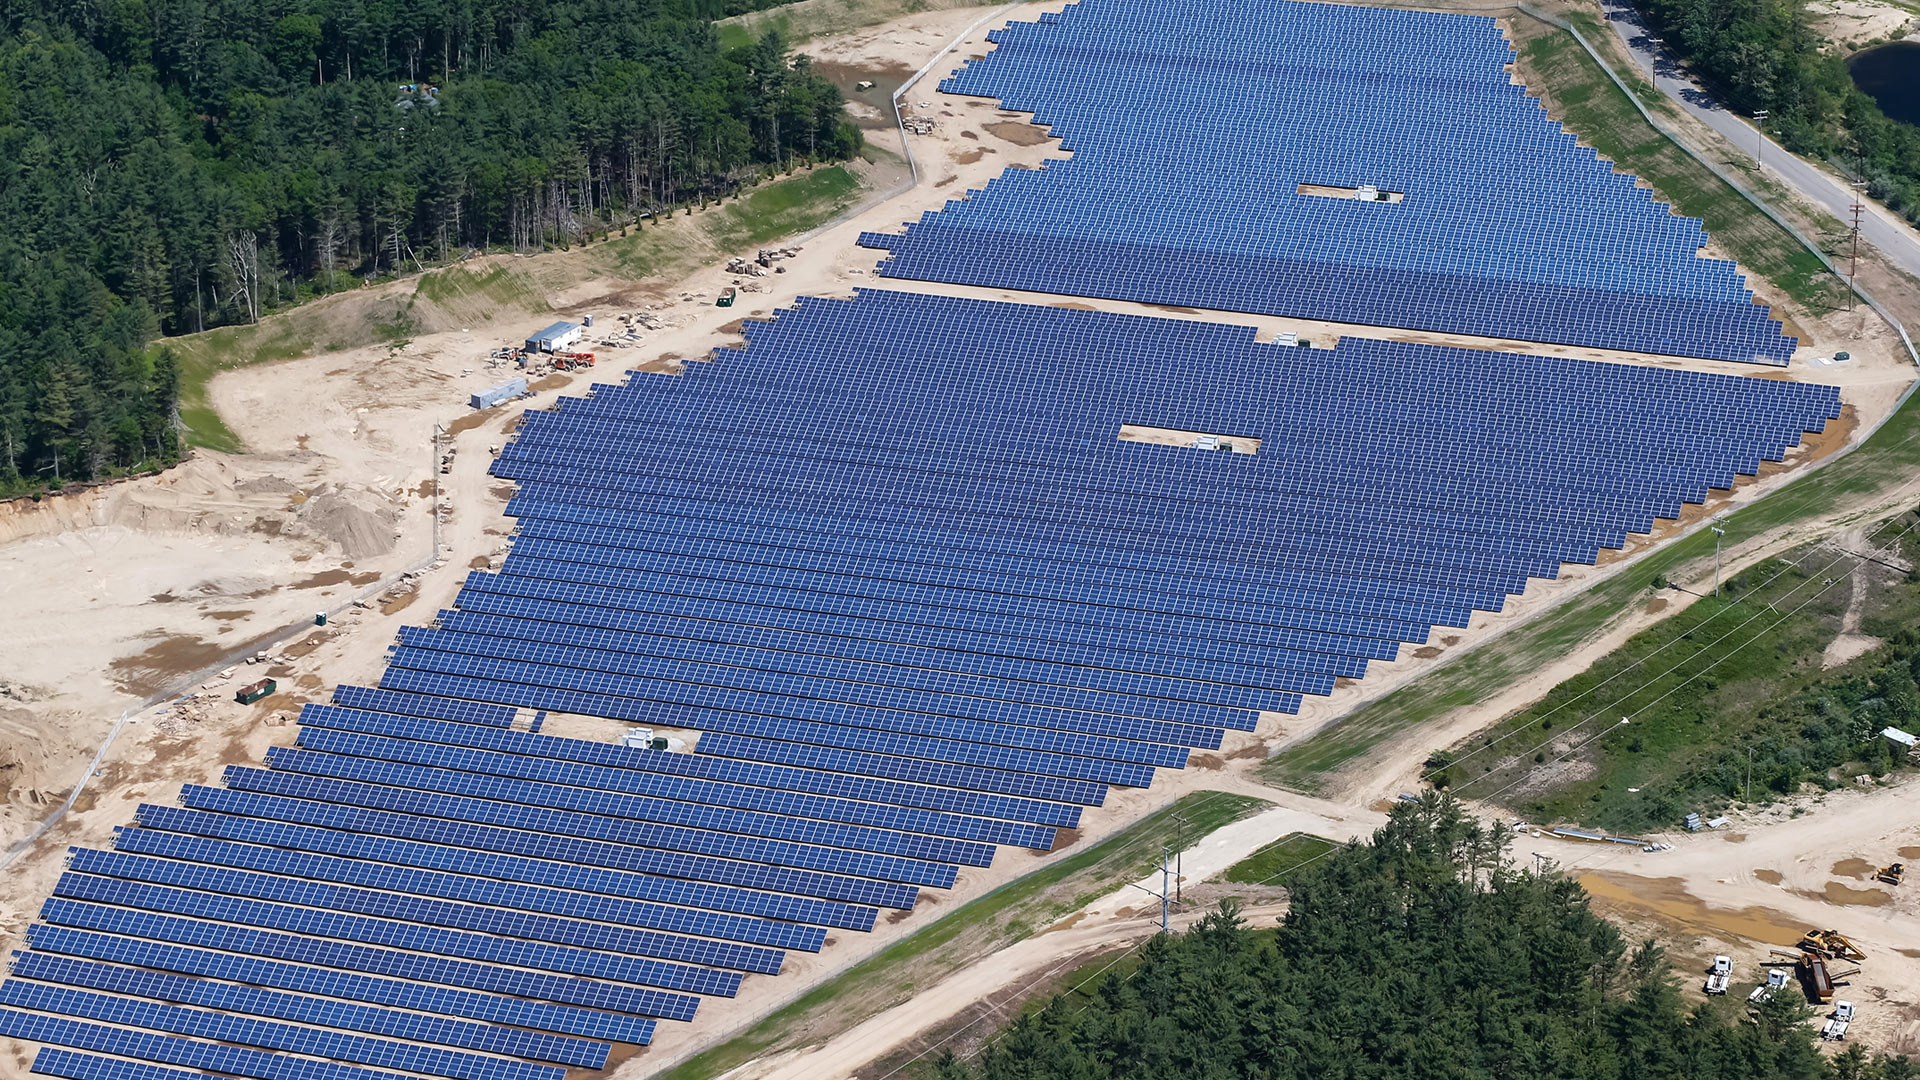 hundreds of solar panels